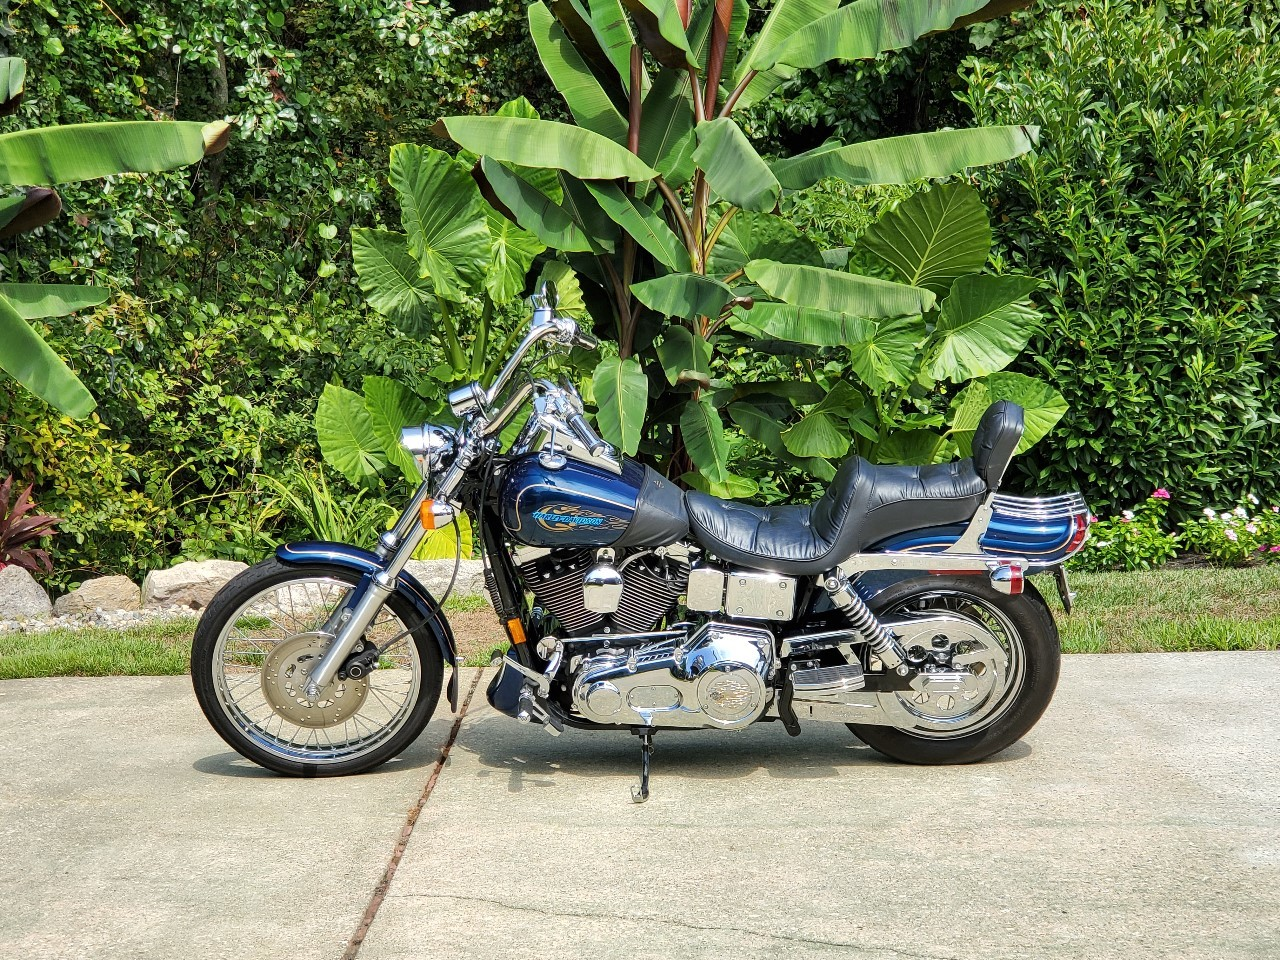 Craigslist South Jersey Motorcycles By Owner   Reviewmotors.co